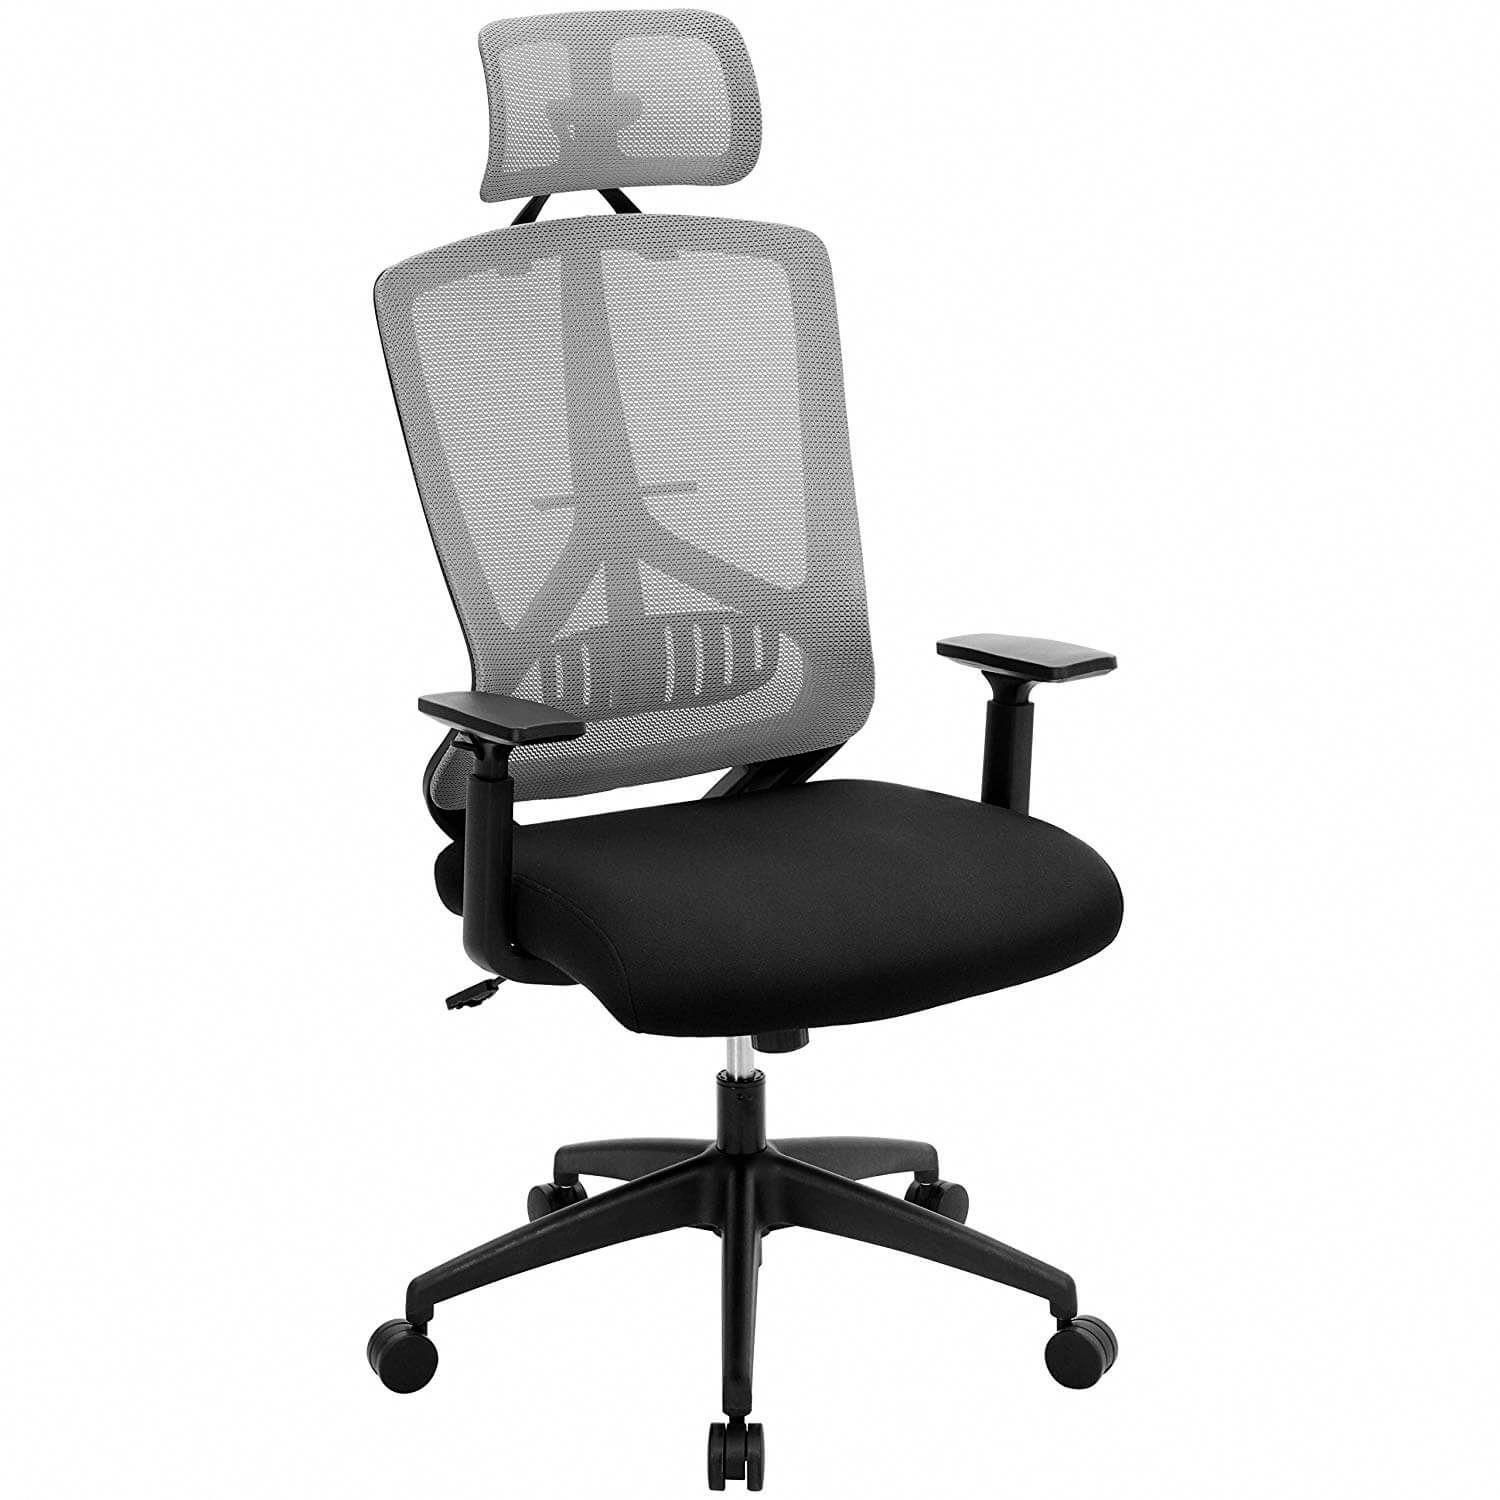 View all chairs modern chairs home office gaming dining songmics gamingchair